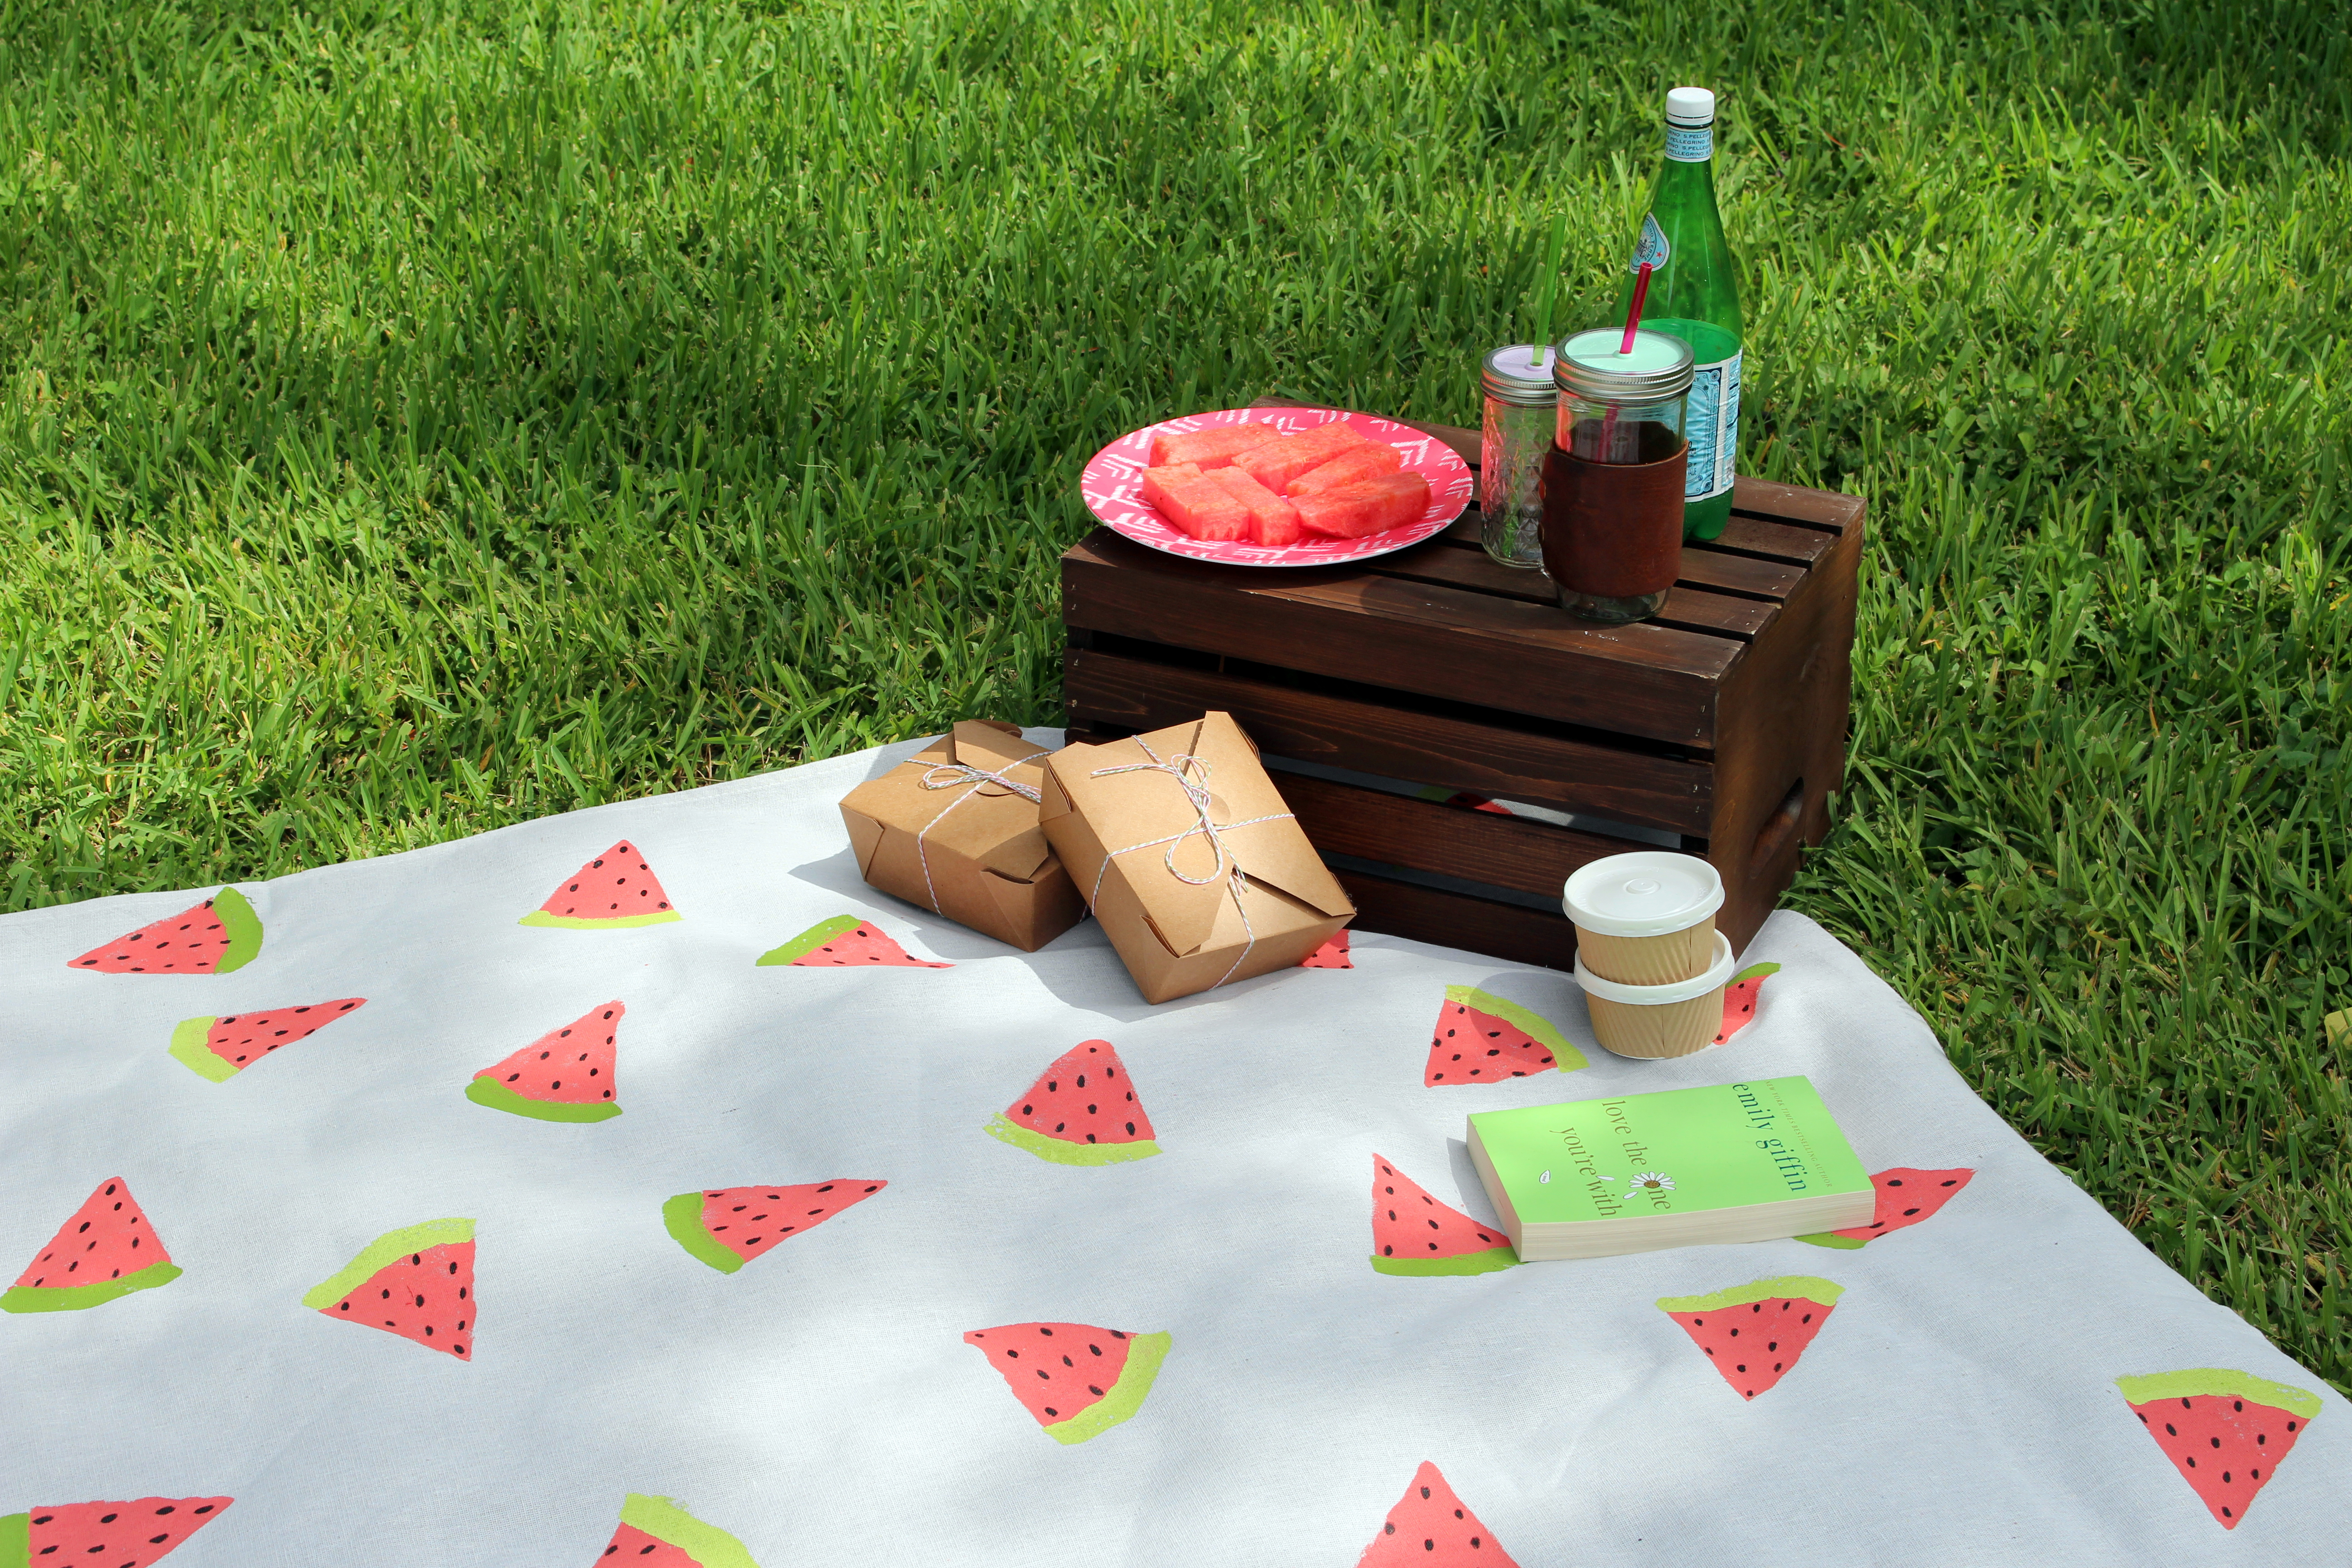 DIY // Watermelon Picnic Blanket - Within the Grove